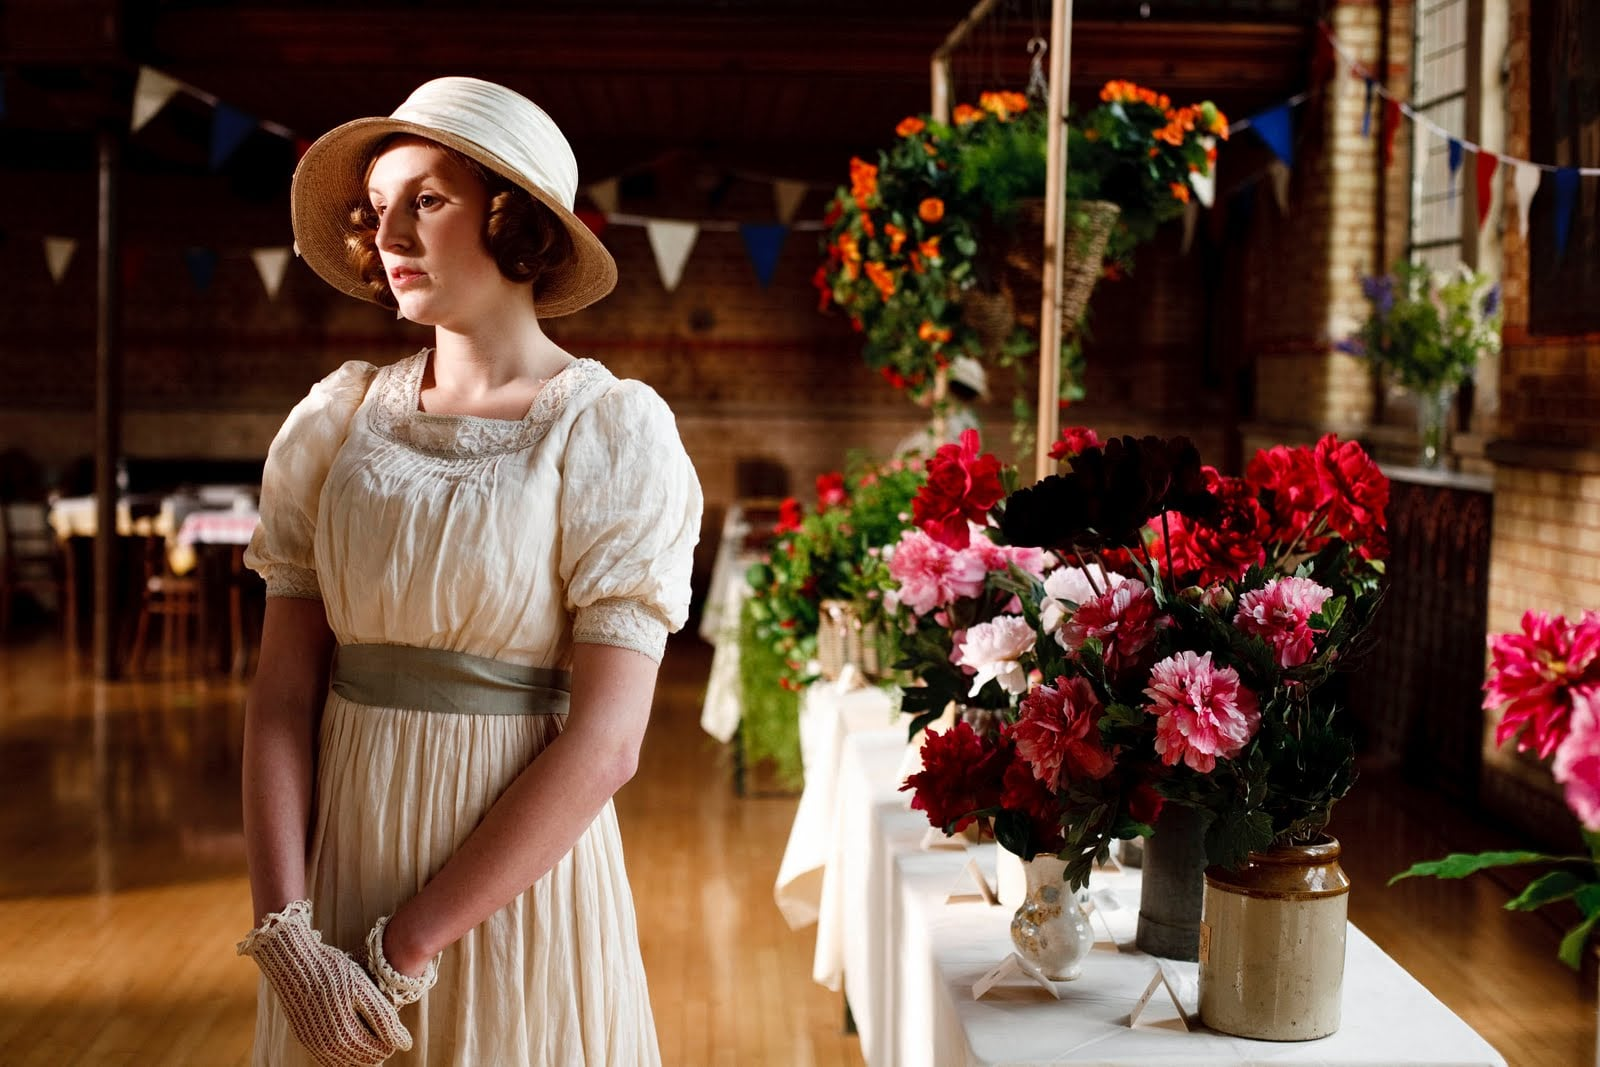 The lack of contemporary deodorants isn't to say that people smelled awful, though. Upper-class women like Edith might bathe every day —after, of course, a servant ran the bath for them. Some soaps, such as Yardley, that the Downton Abbey characters might have used are still around today. Source: ITV